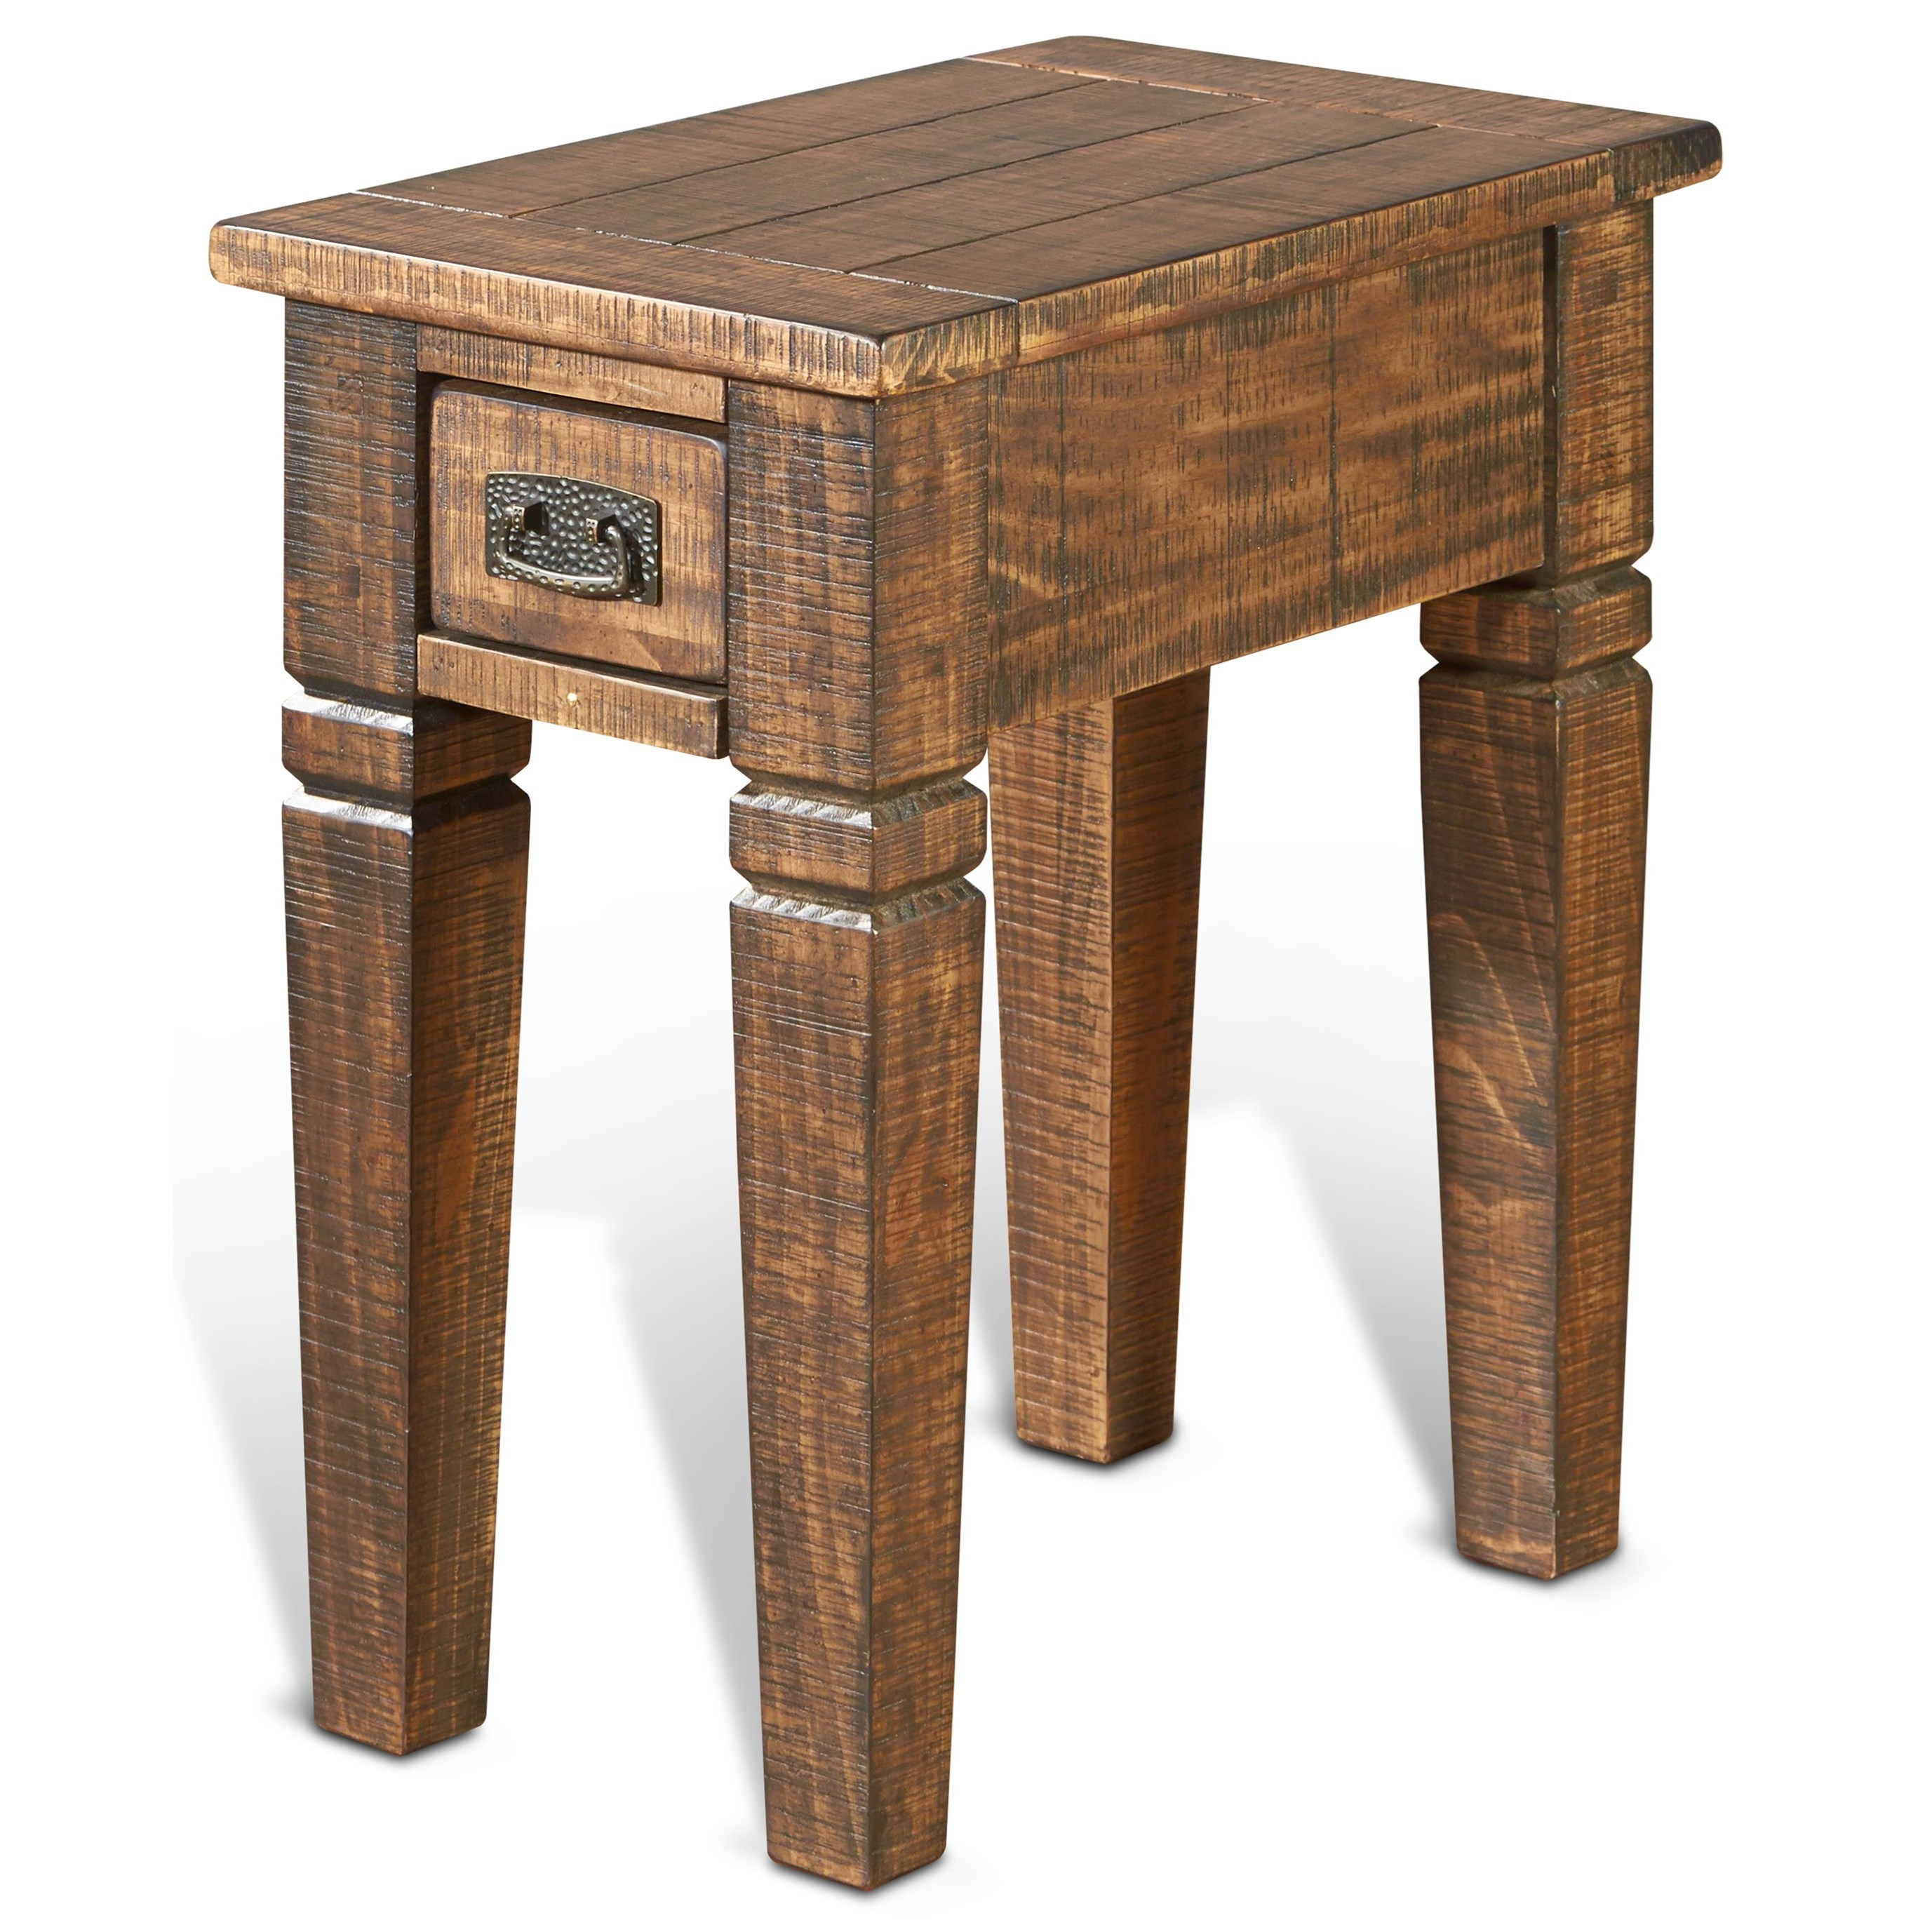 Sunny Designs Homestead Chair Side Table w/ 1 Drawer - Item Number: 3252TL-CS